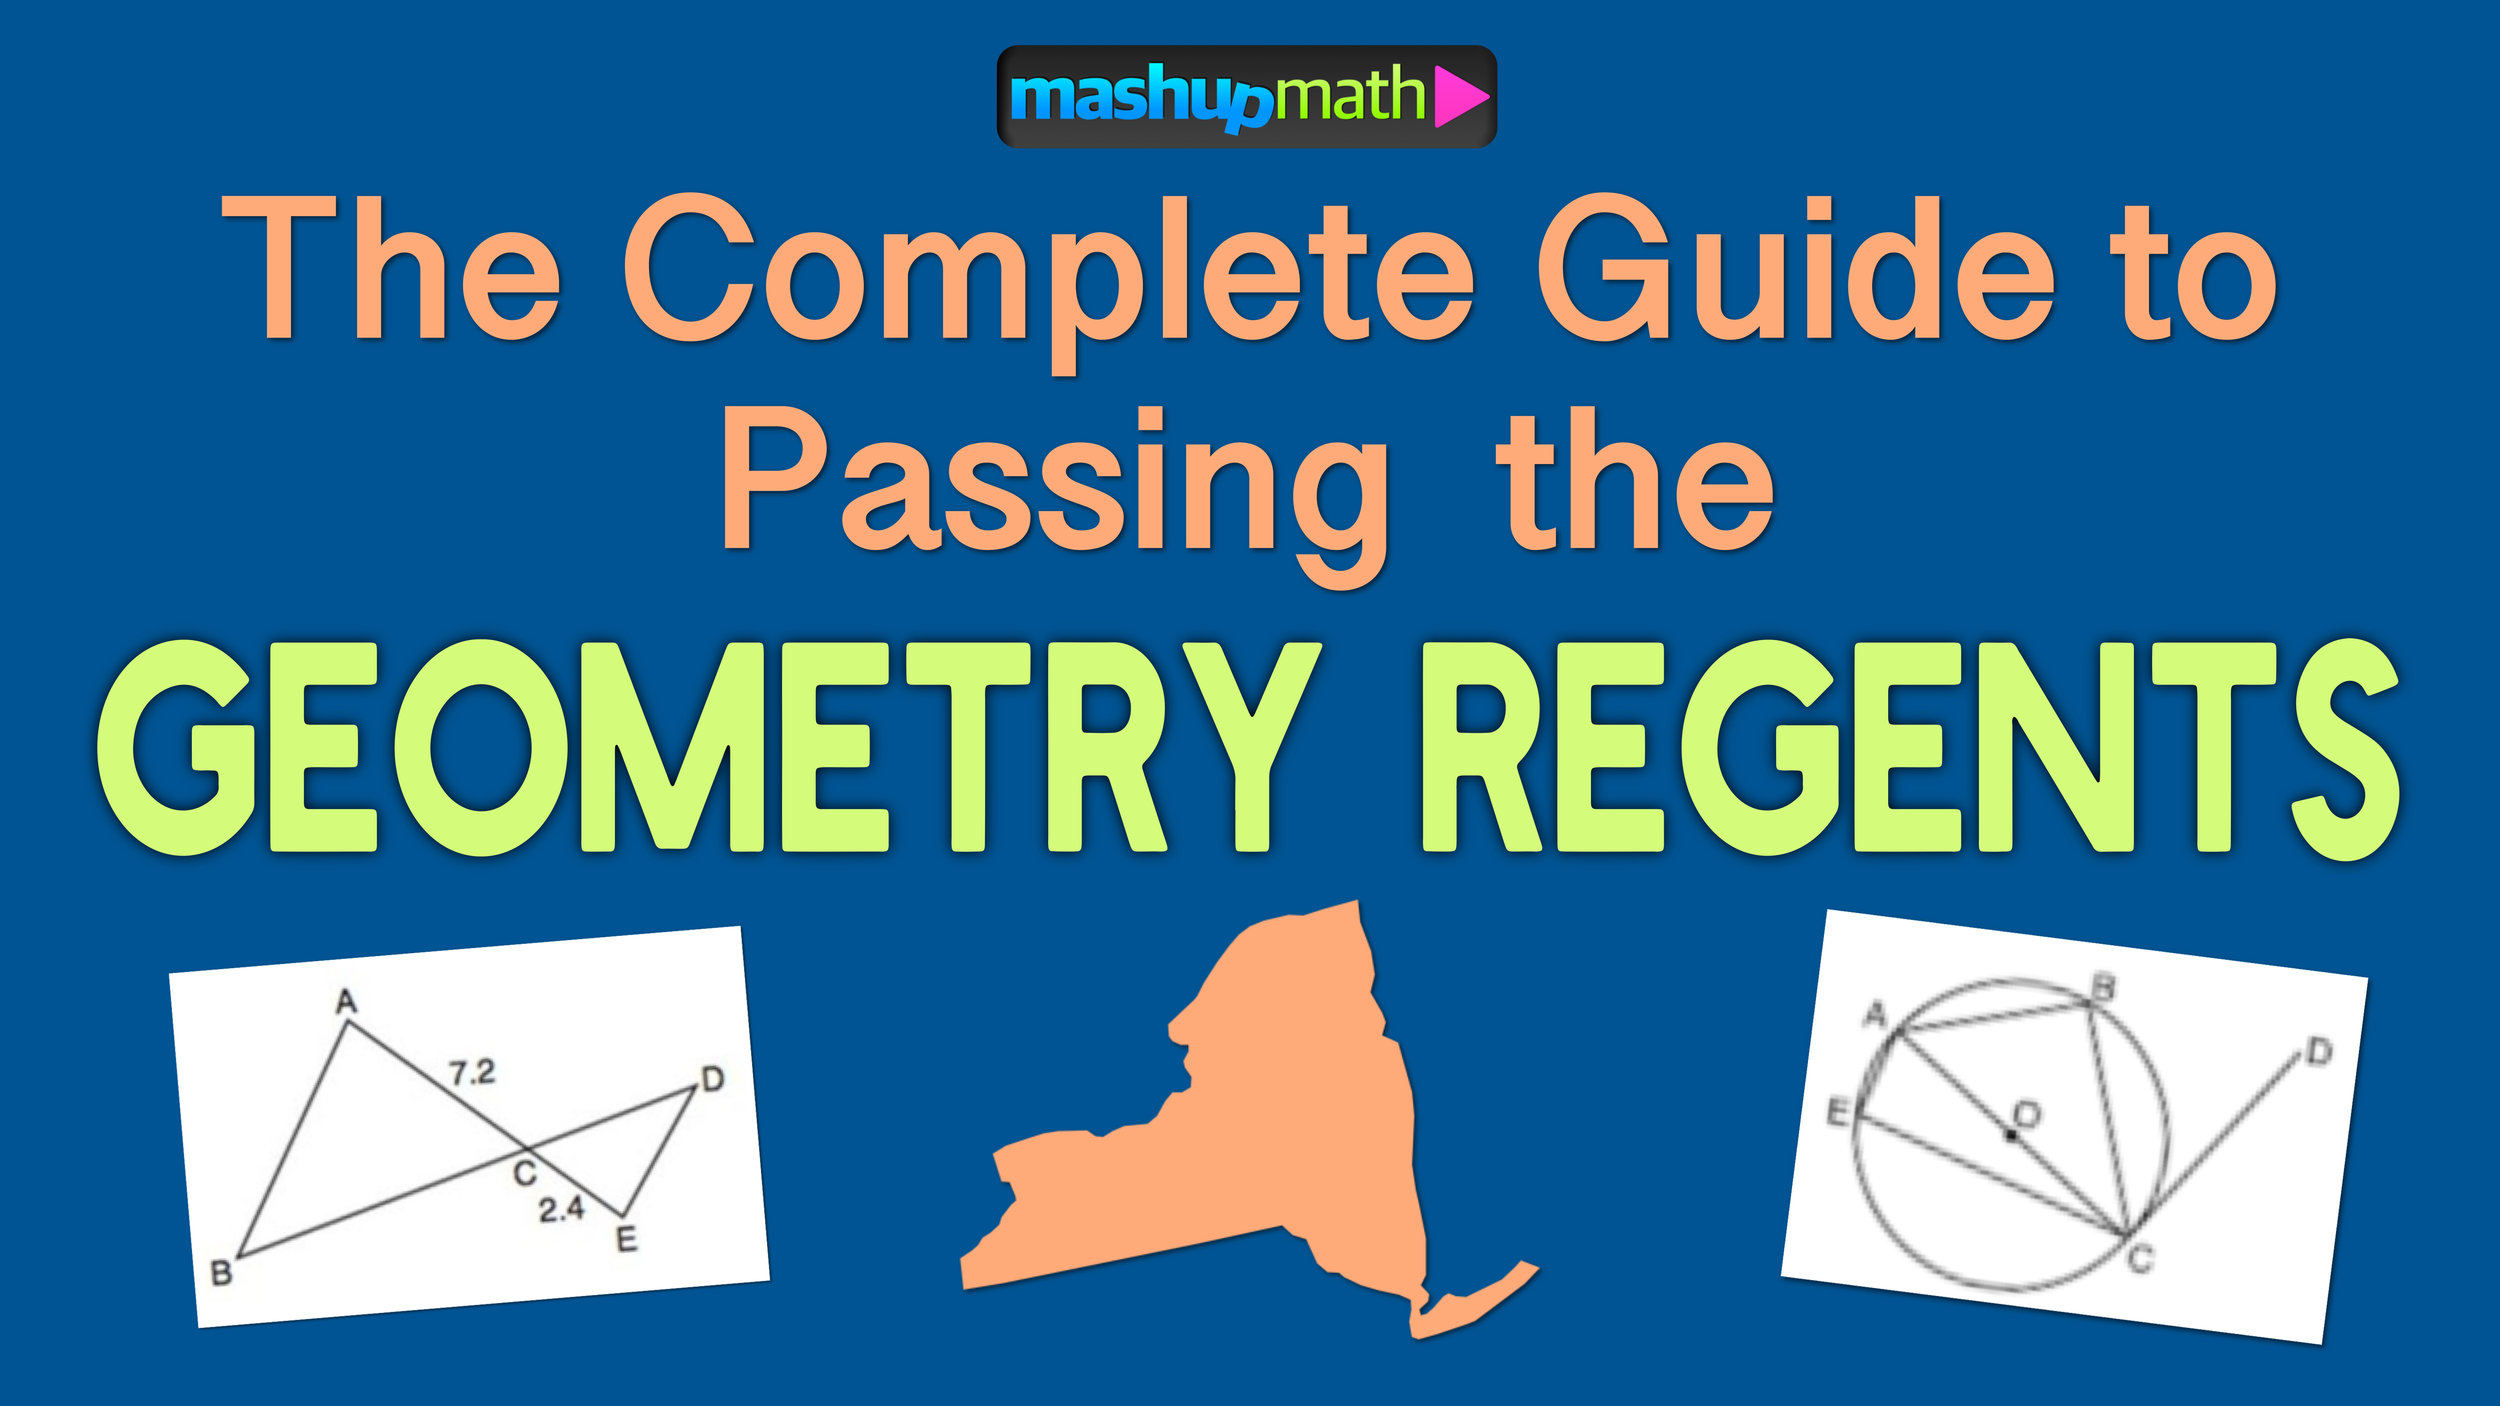 The Ultimate Guide to Passing the Geometry Regents Exam